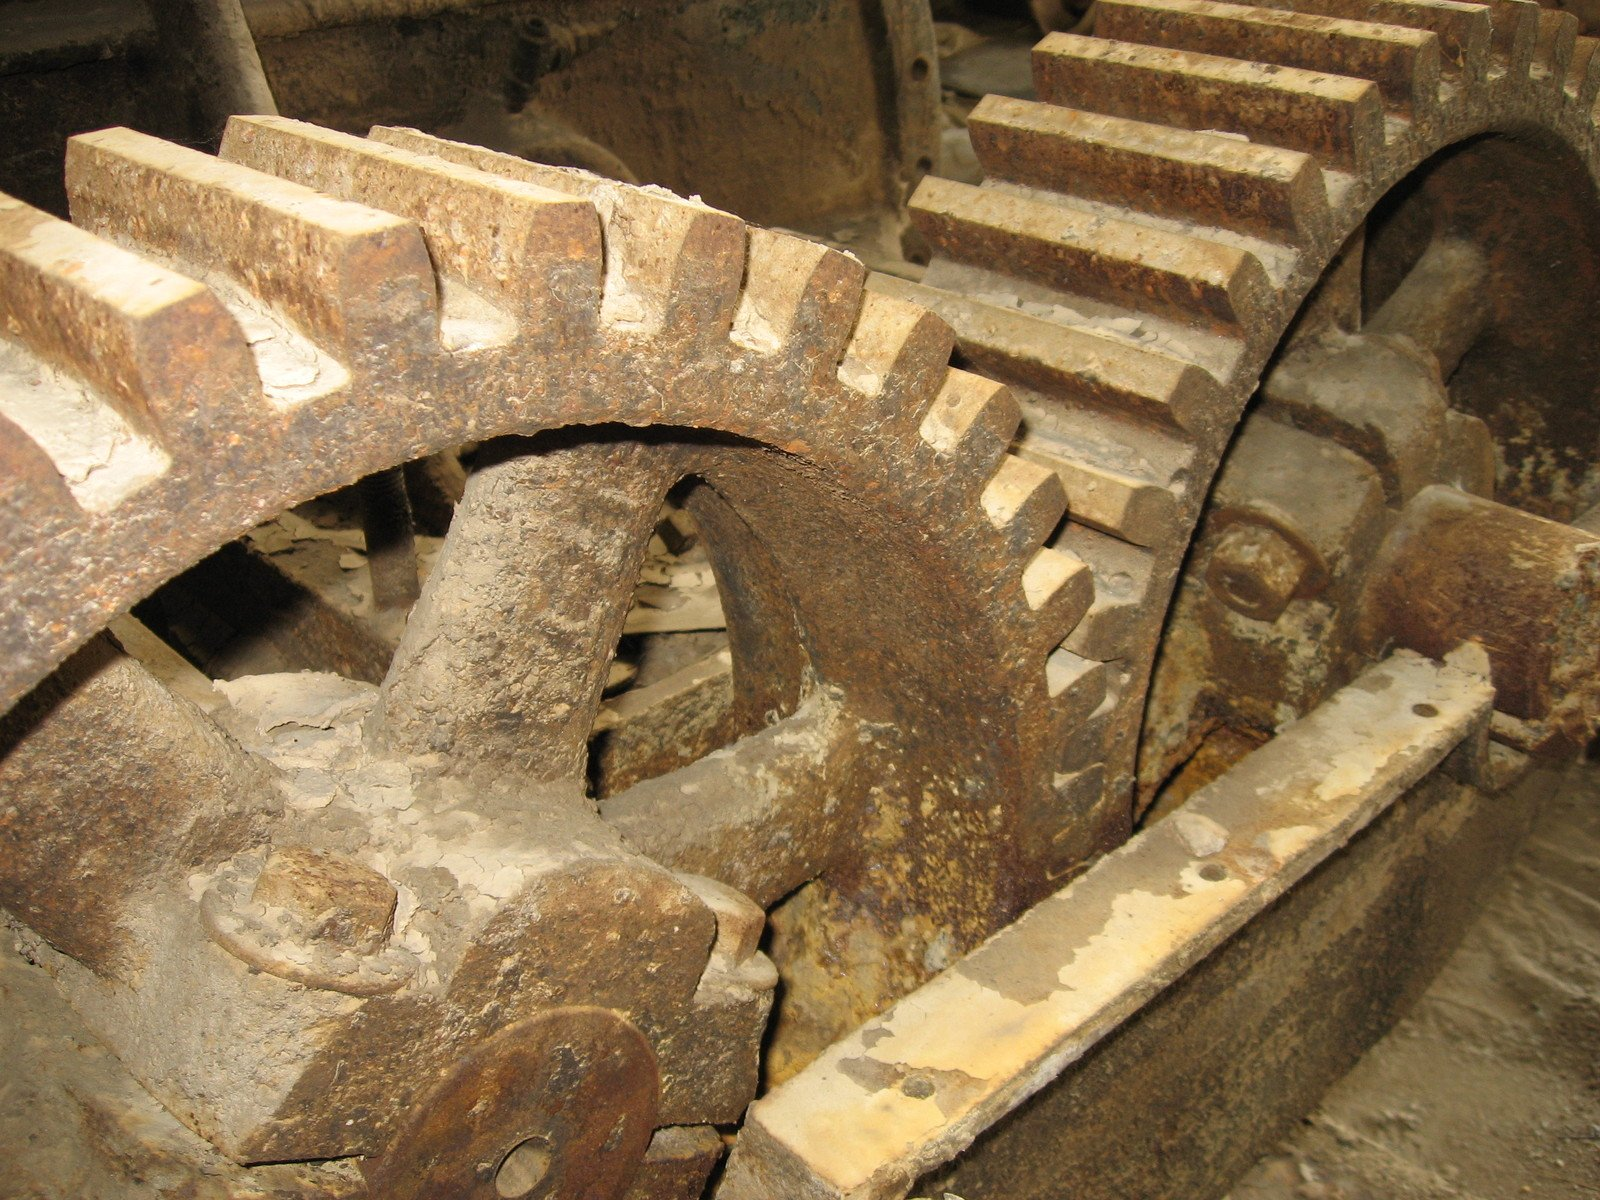 old-mechanical-gear-1229384.jpg